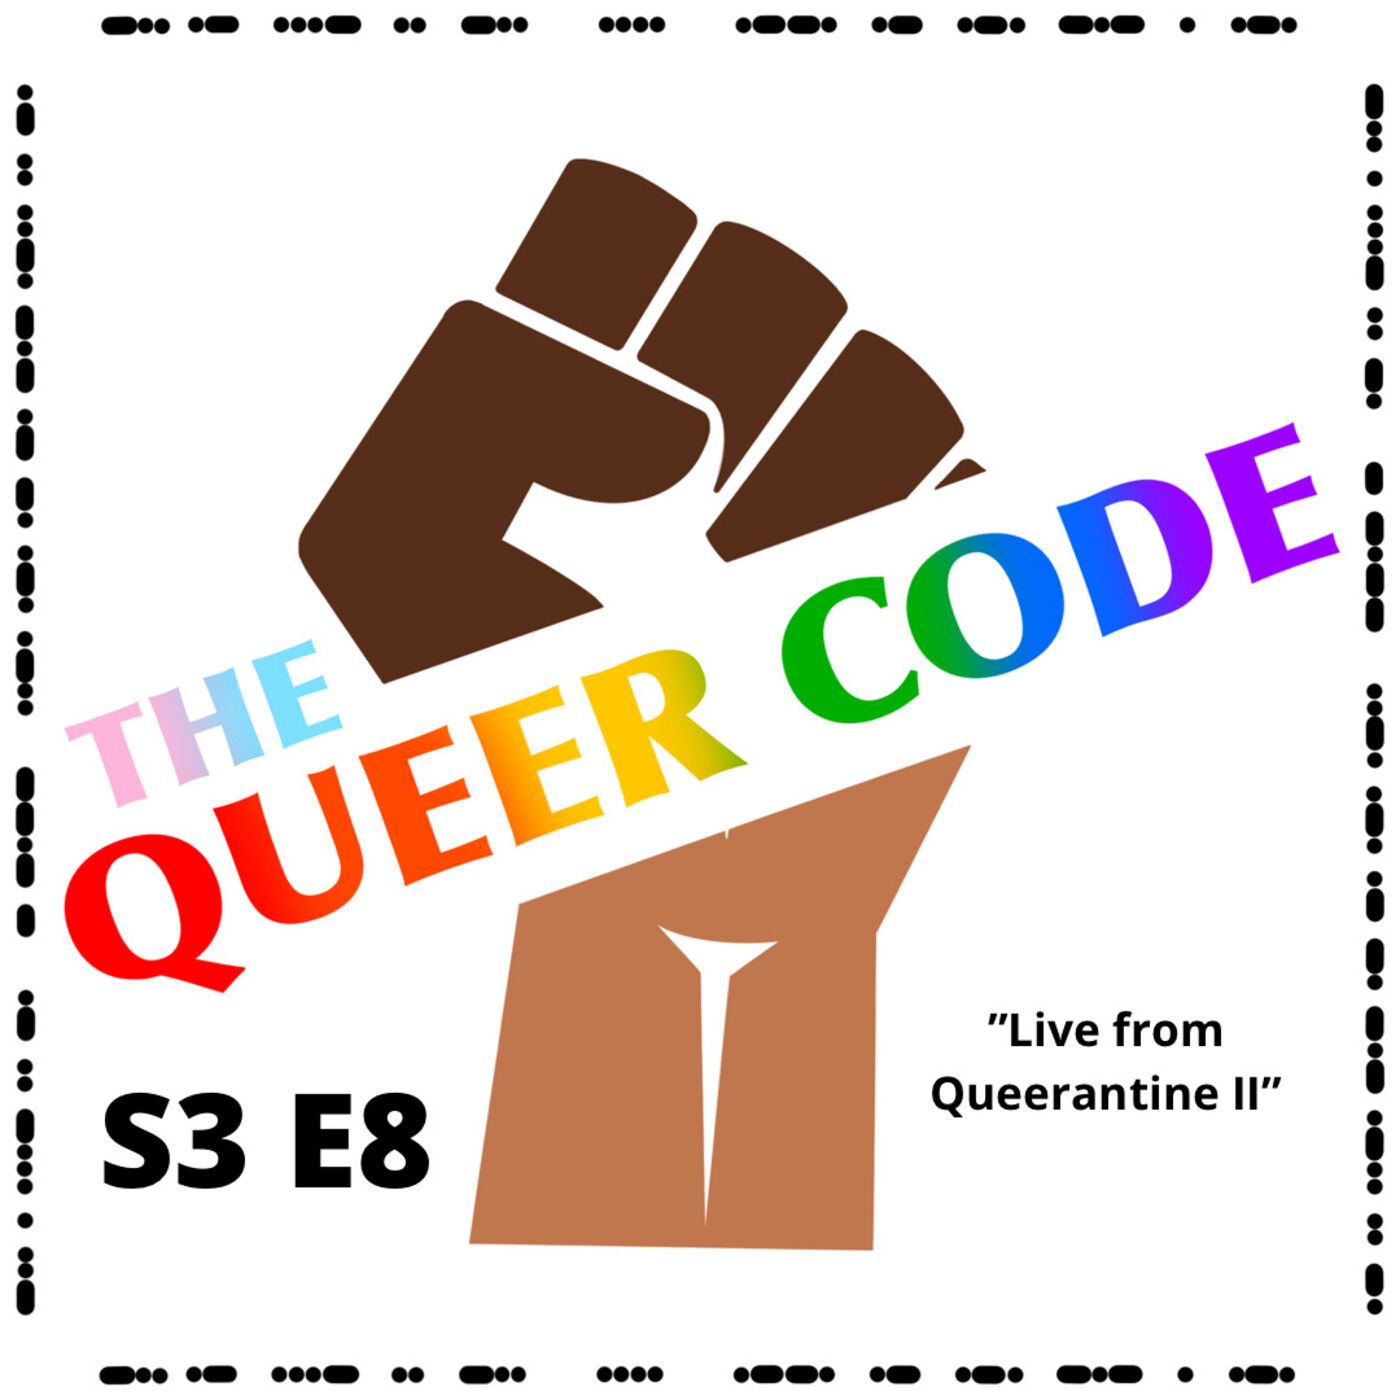 S3 E8 - Live from Queer-antine II